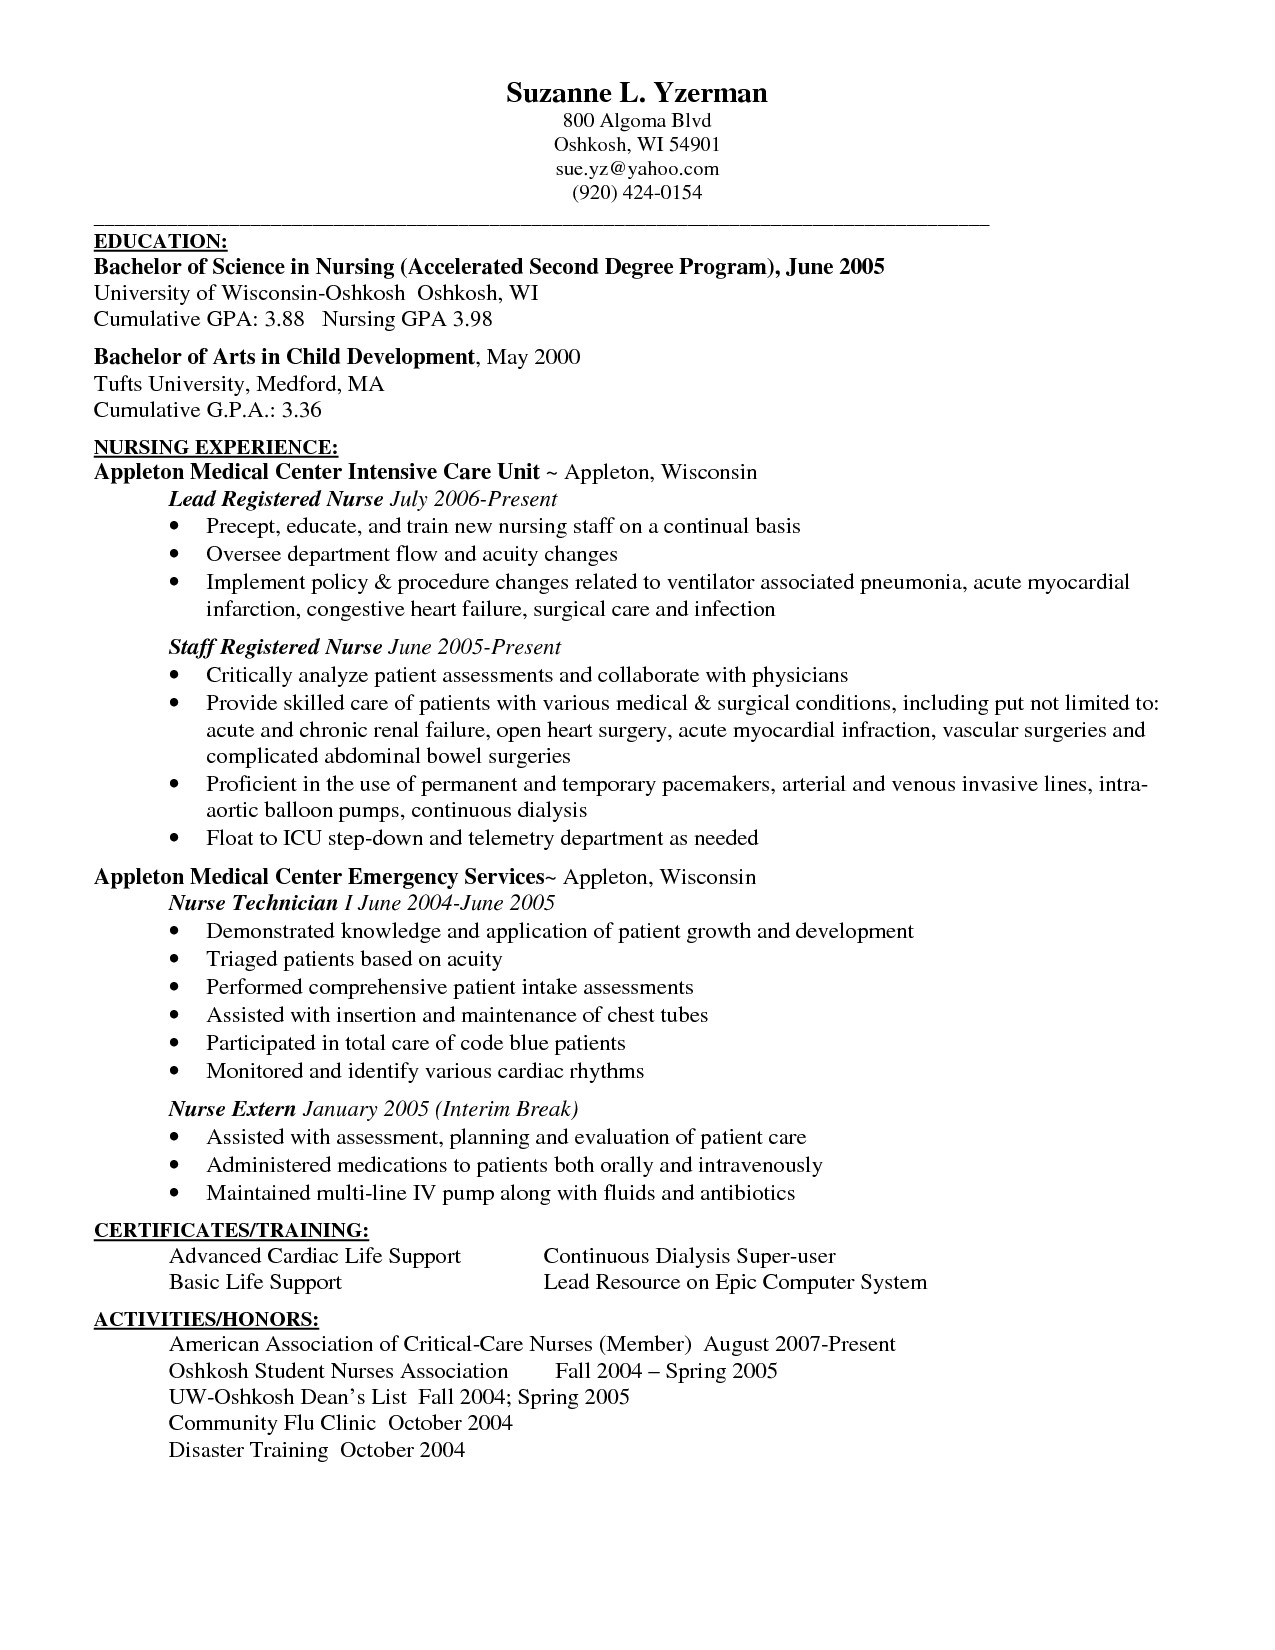 Dialysis Technician Job Description Resume - Patient Care Technician Resume with No Experience Example